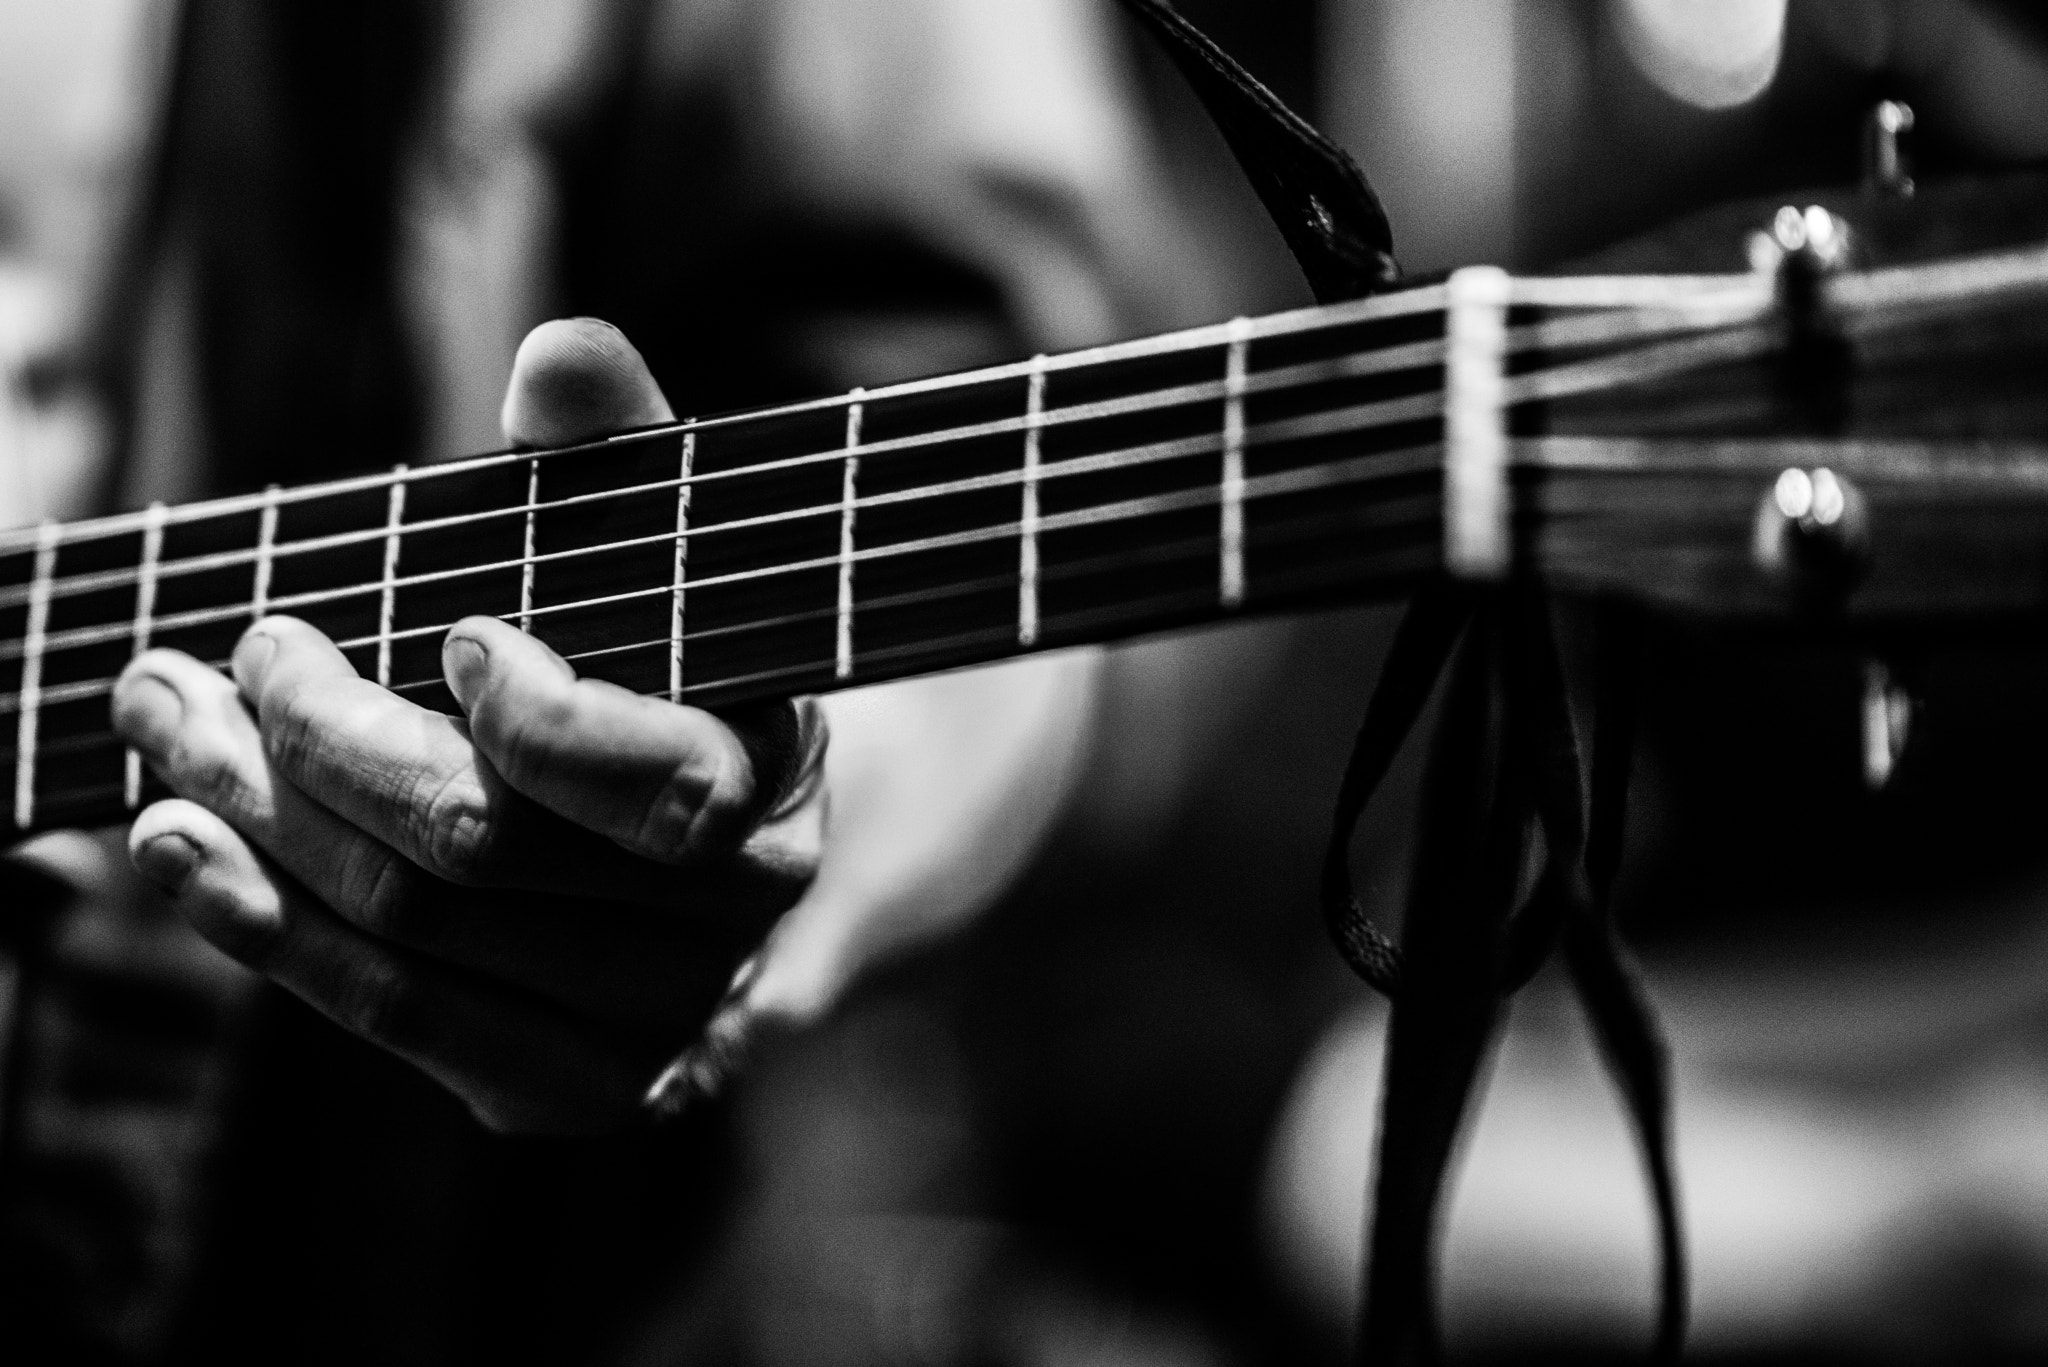 Photograph Guitarist From The Calvinists by Jasper Poppe on 500px